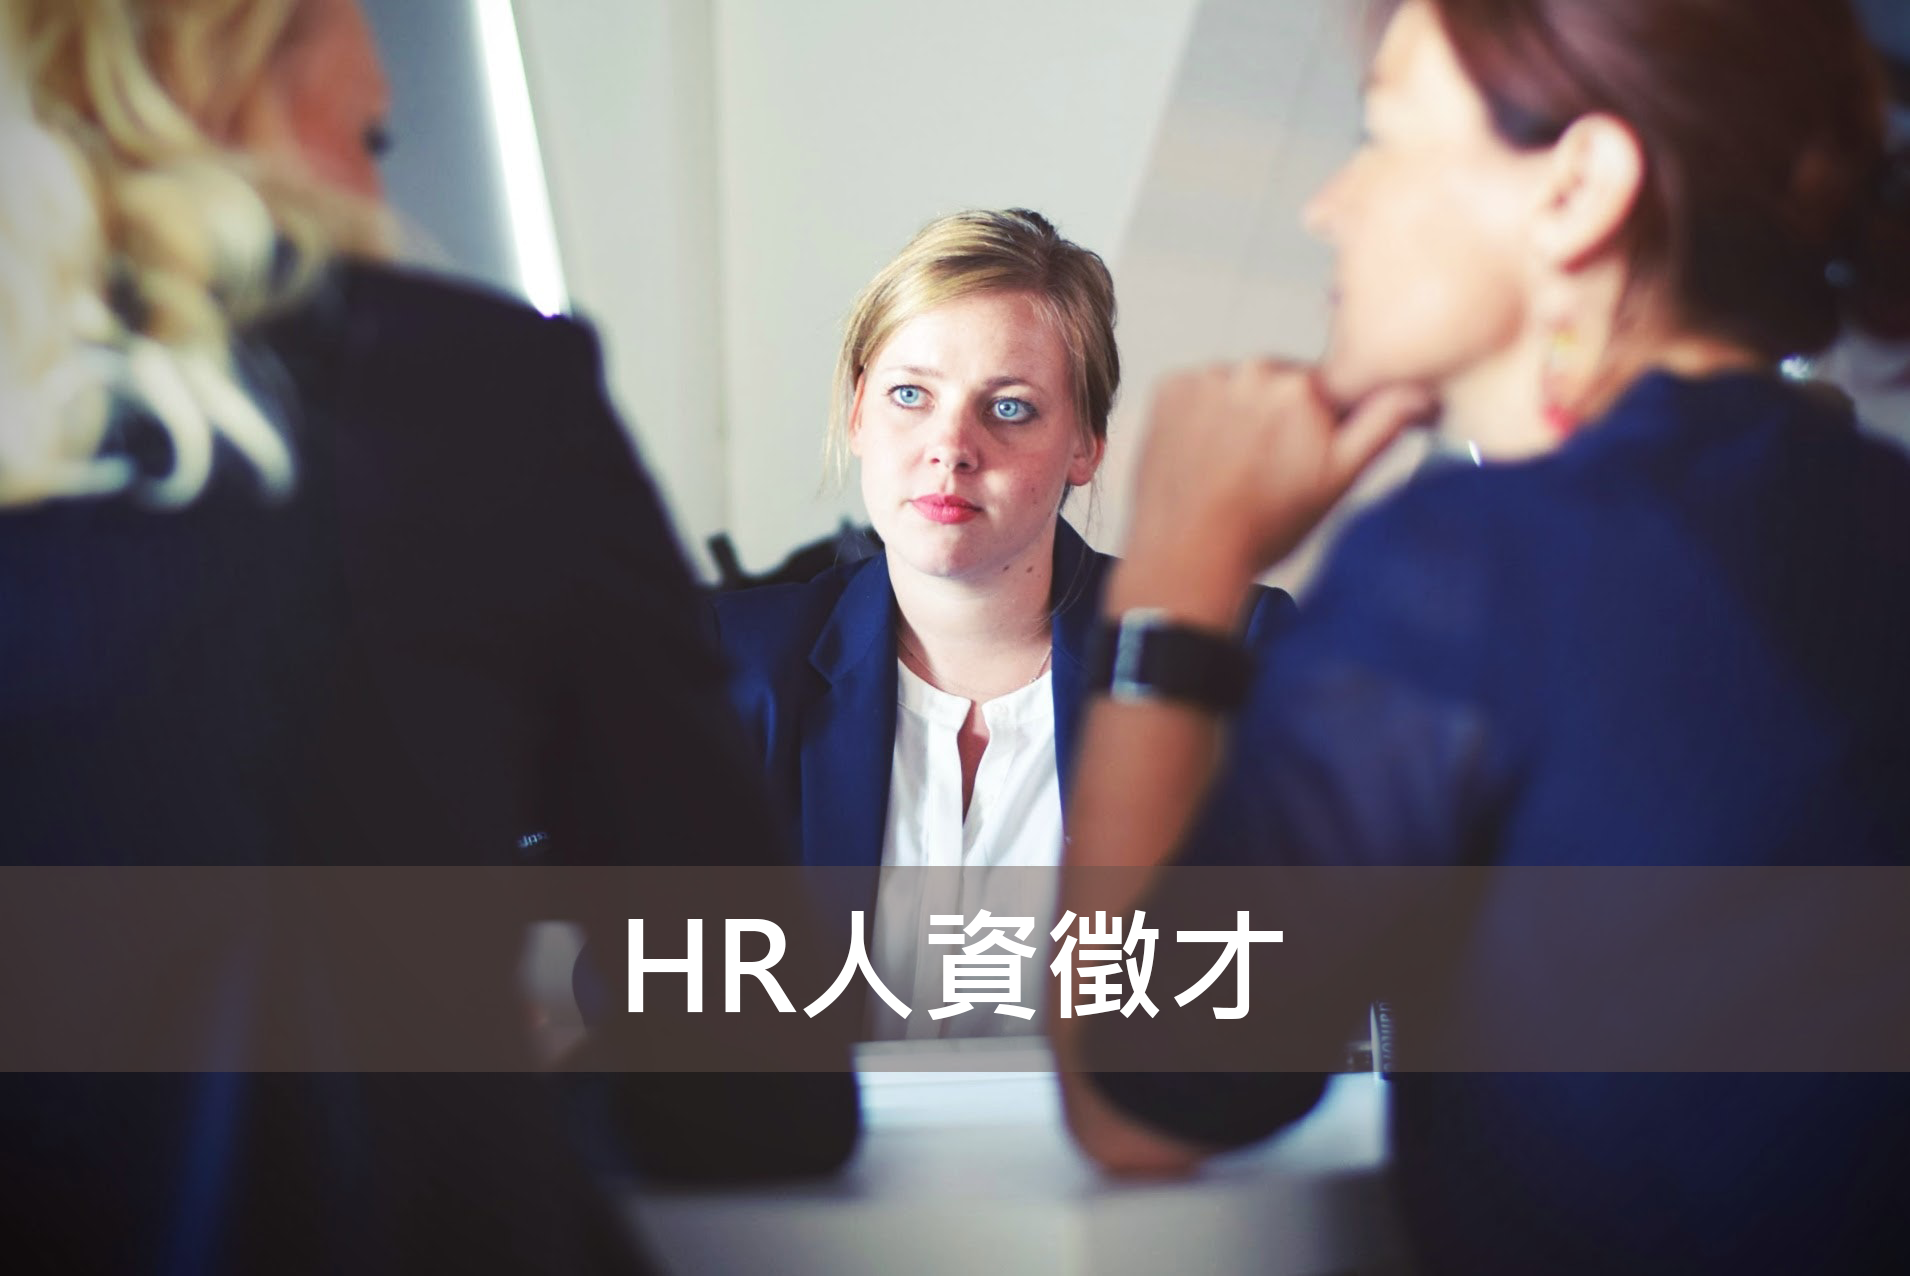 HR人資徵才Talent Wanted!